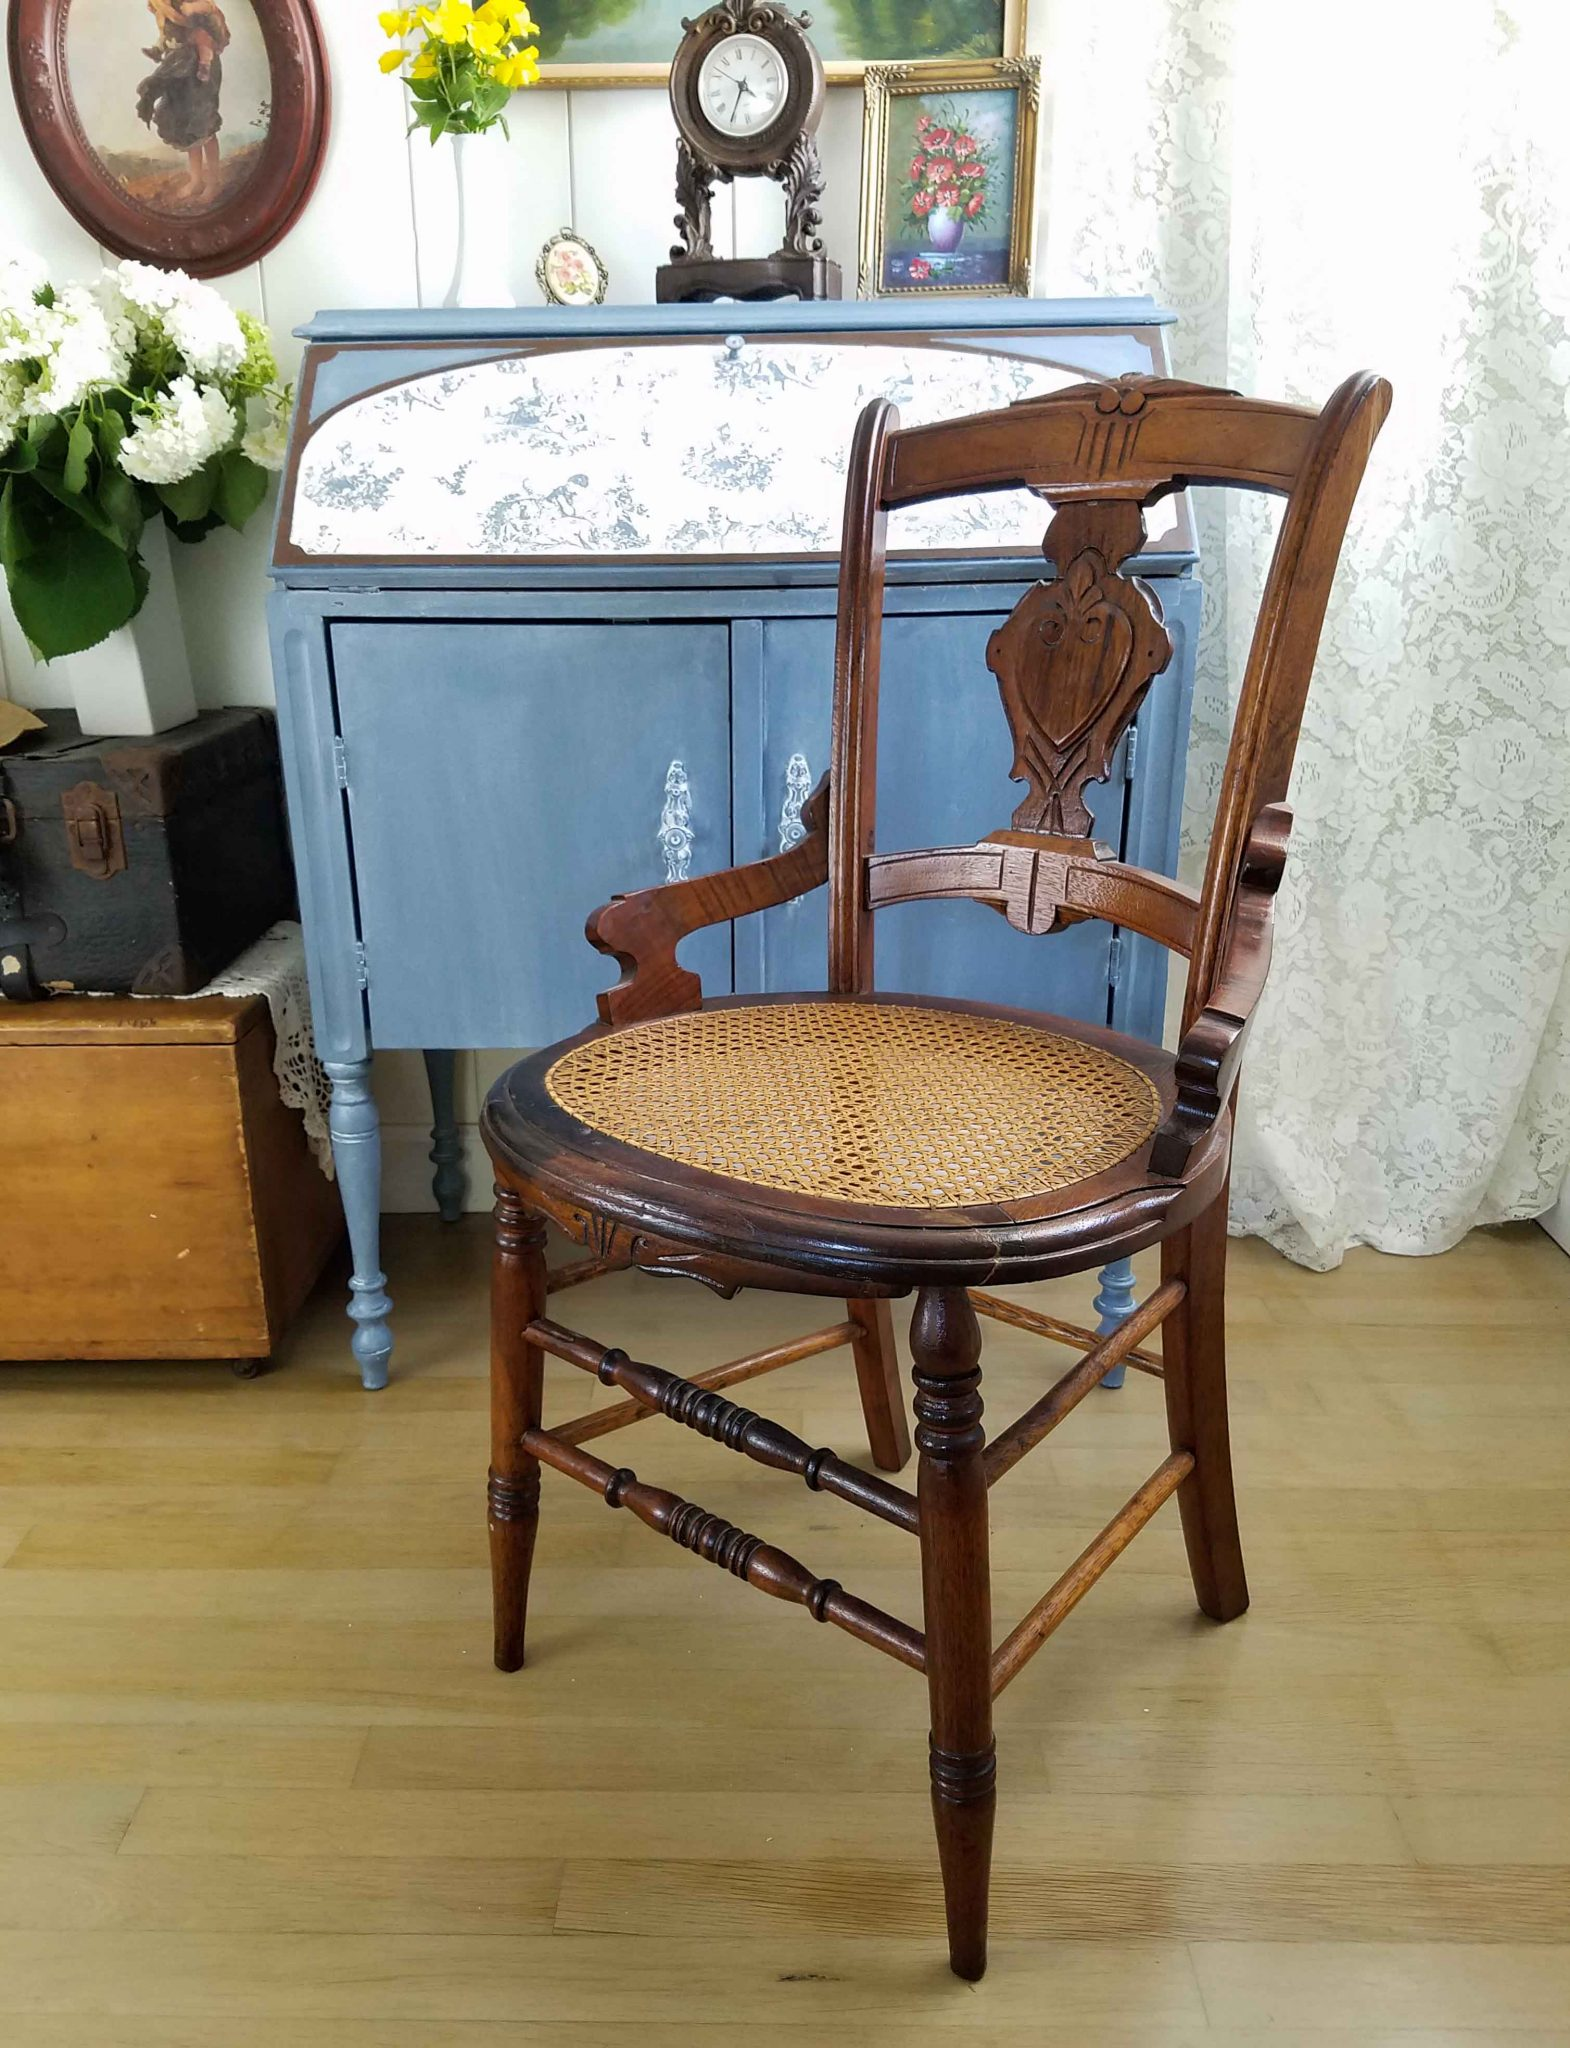 Antique Caned Chair Paired with Secretary Desk by Prodigal Pieces | prodigalpieces.com